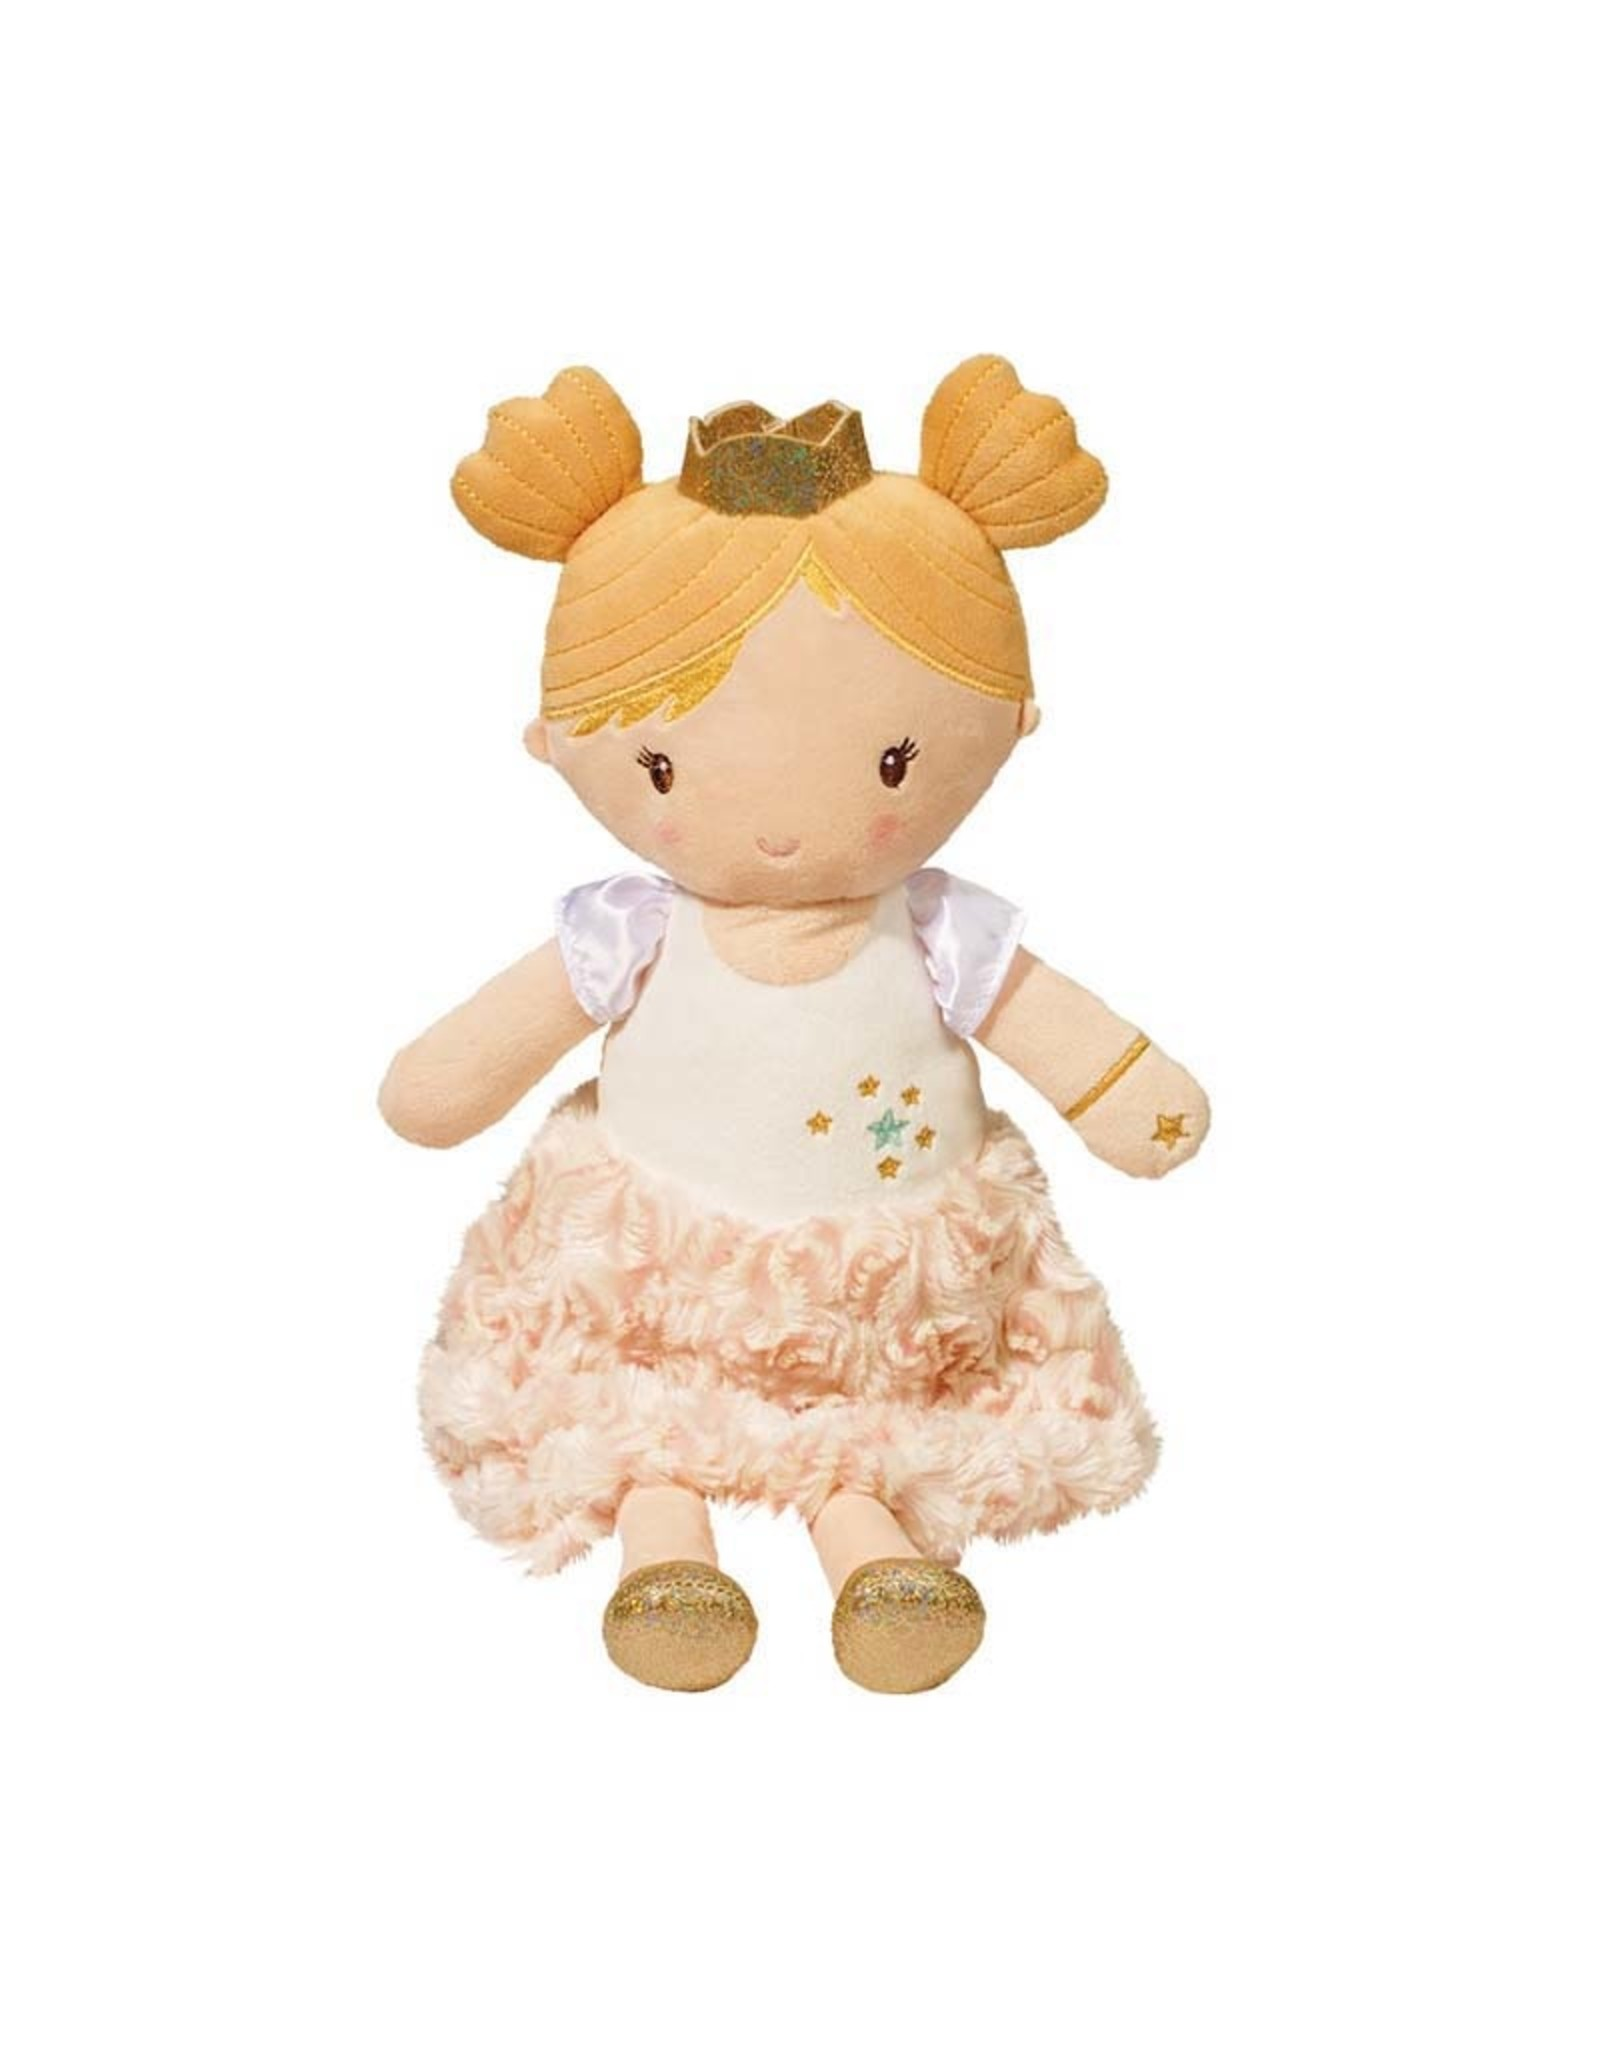 Douglas Princess Noa Doll